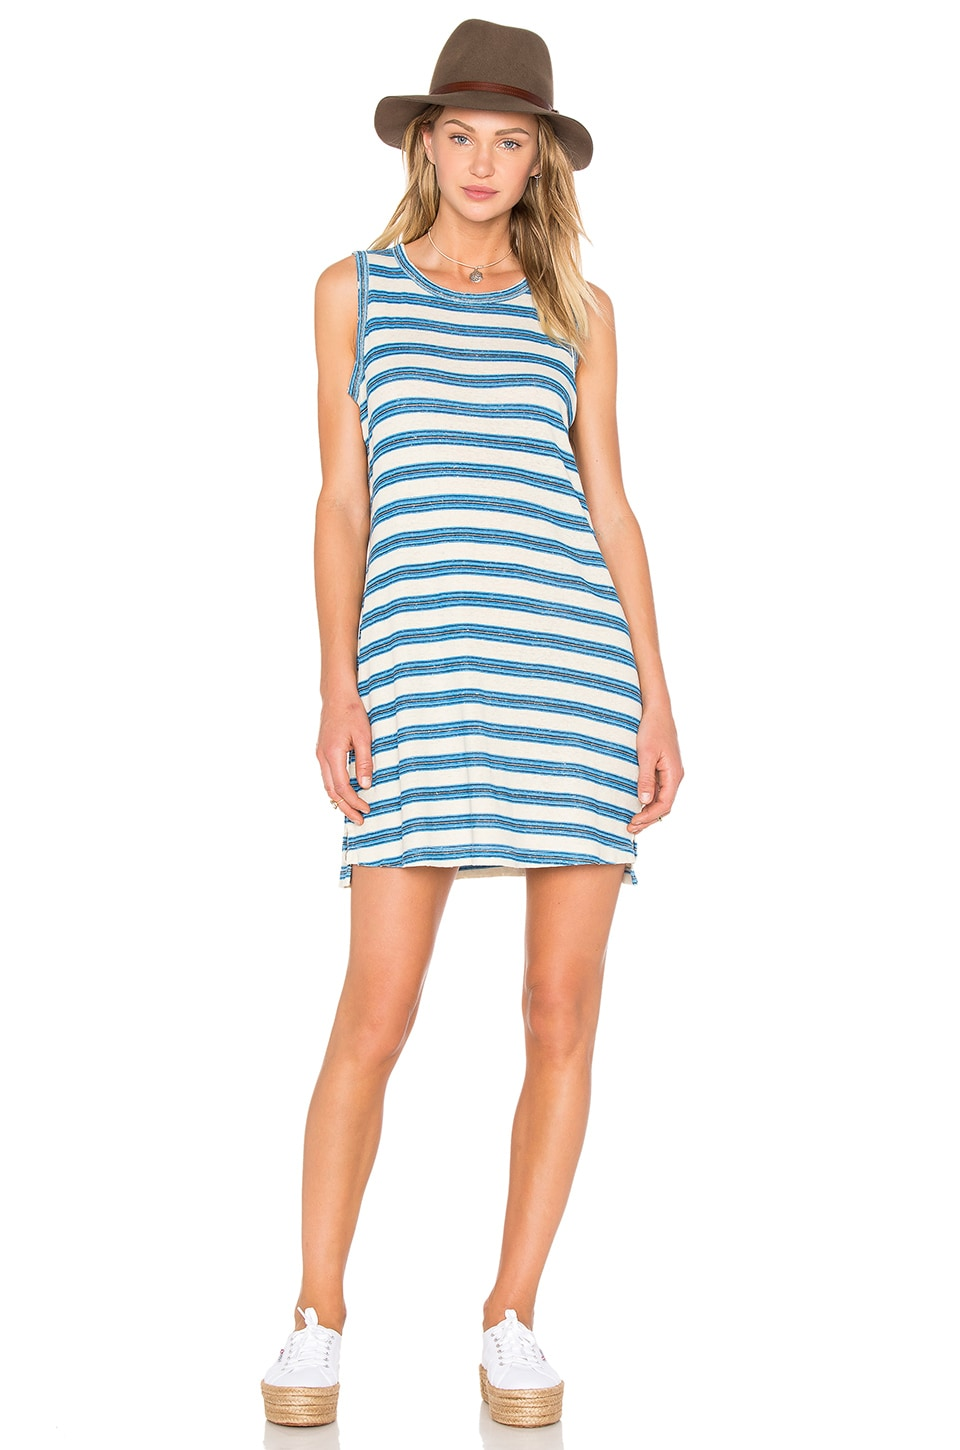 The Muscle Tee Dress by Current/Elliott